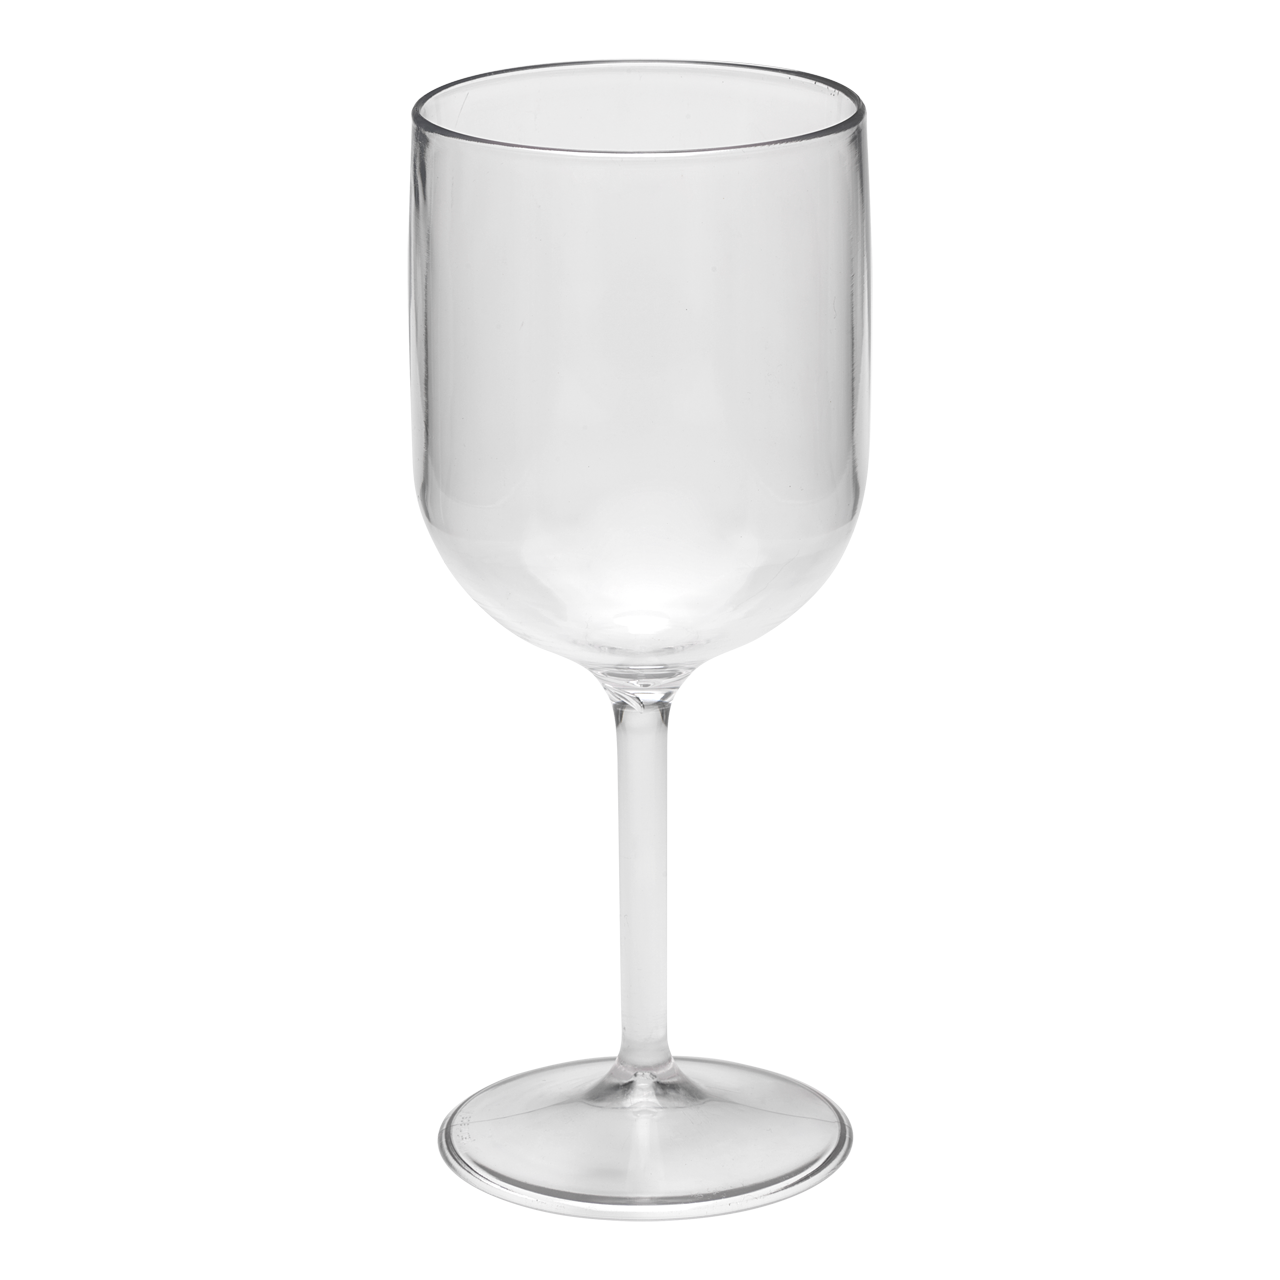 Glasses standard housewares homeware. Cups clipart glass cup